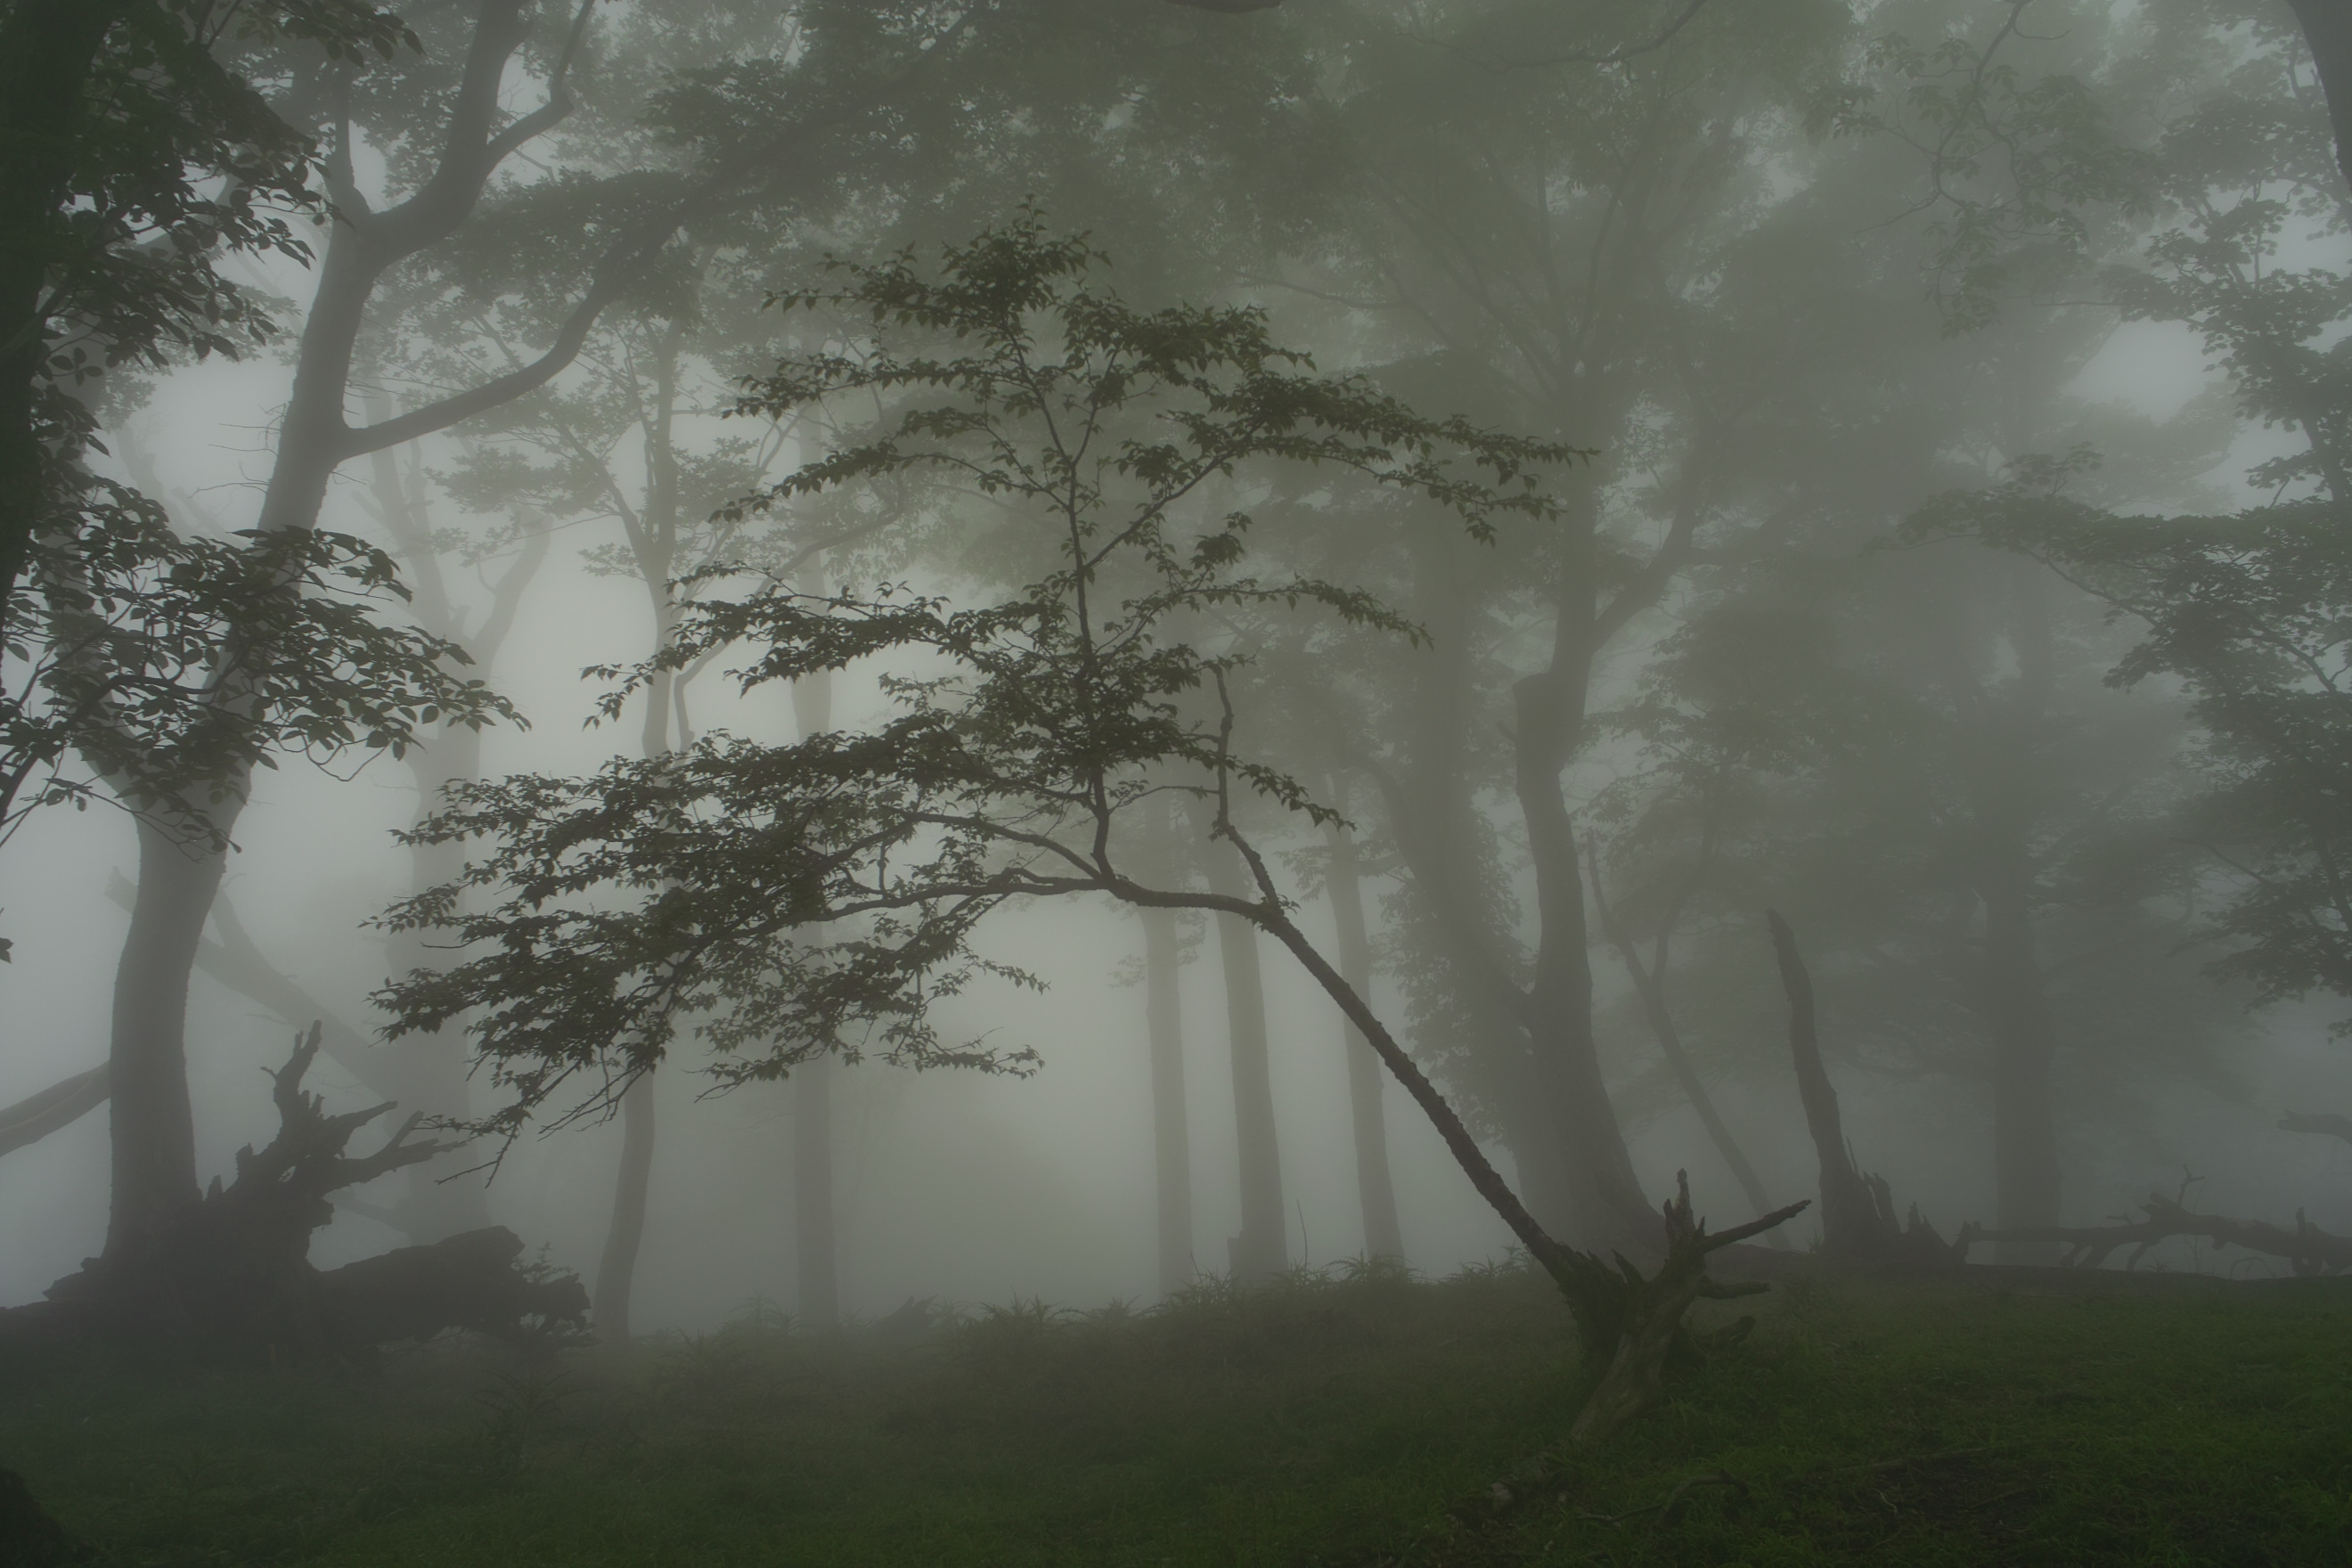 Quotes About Mist Or Fog. QuotesGram